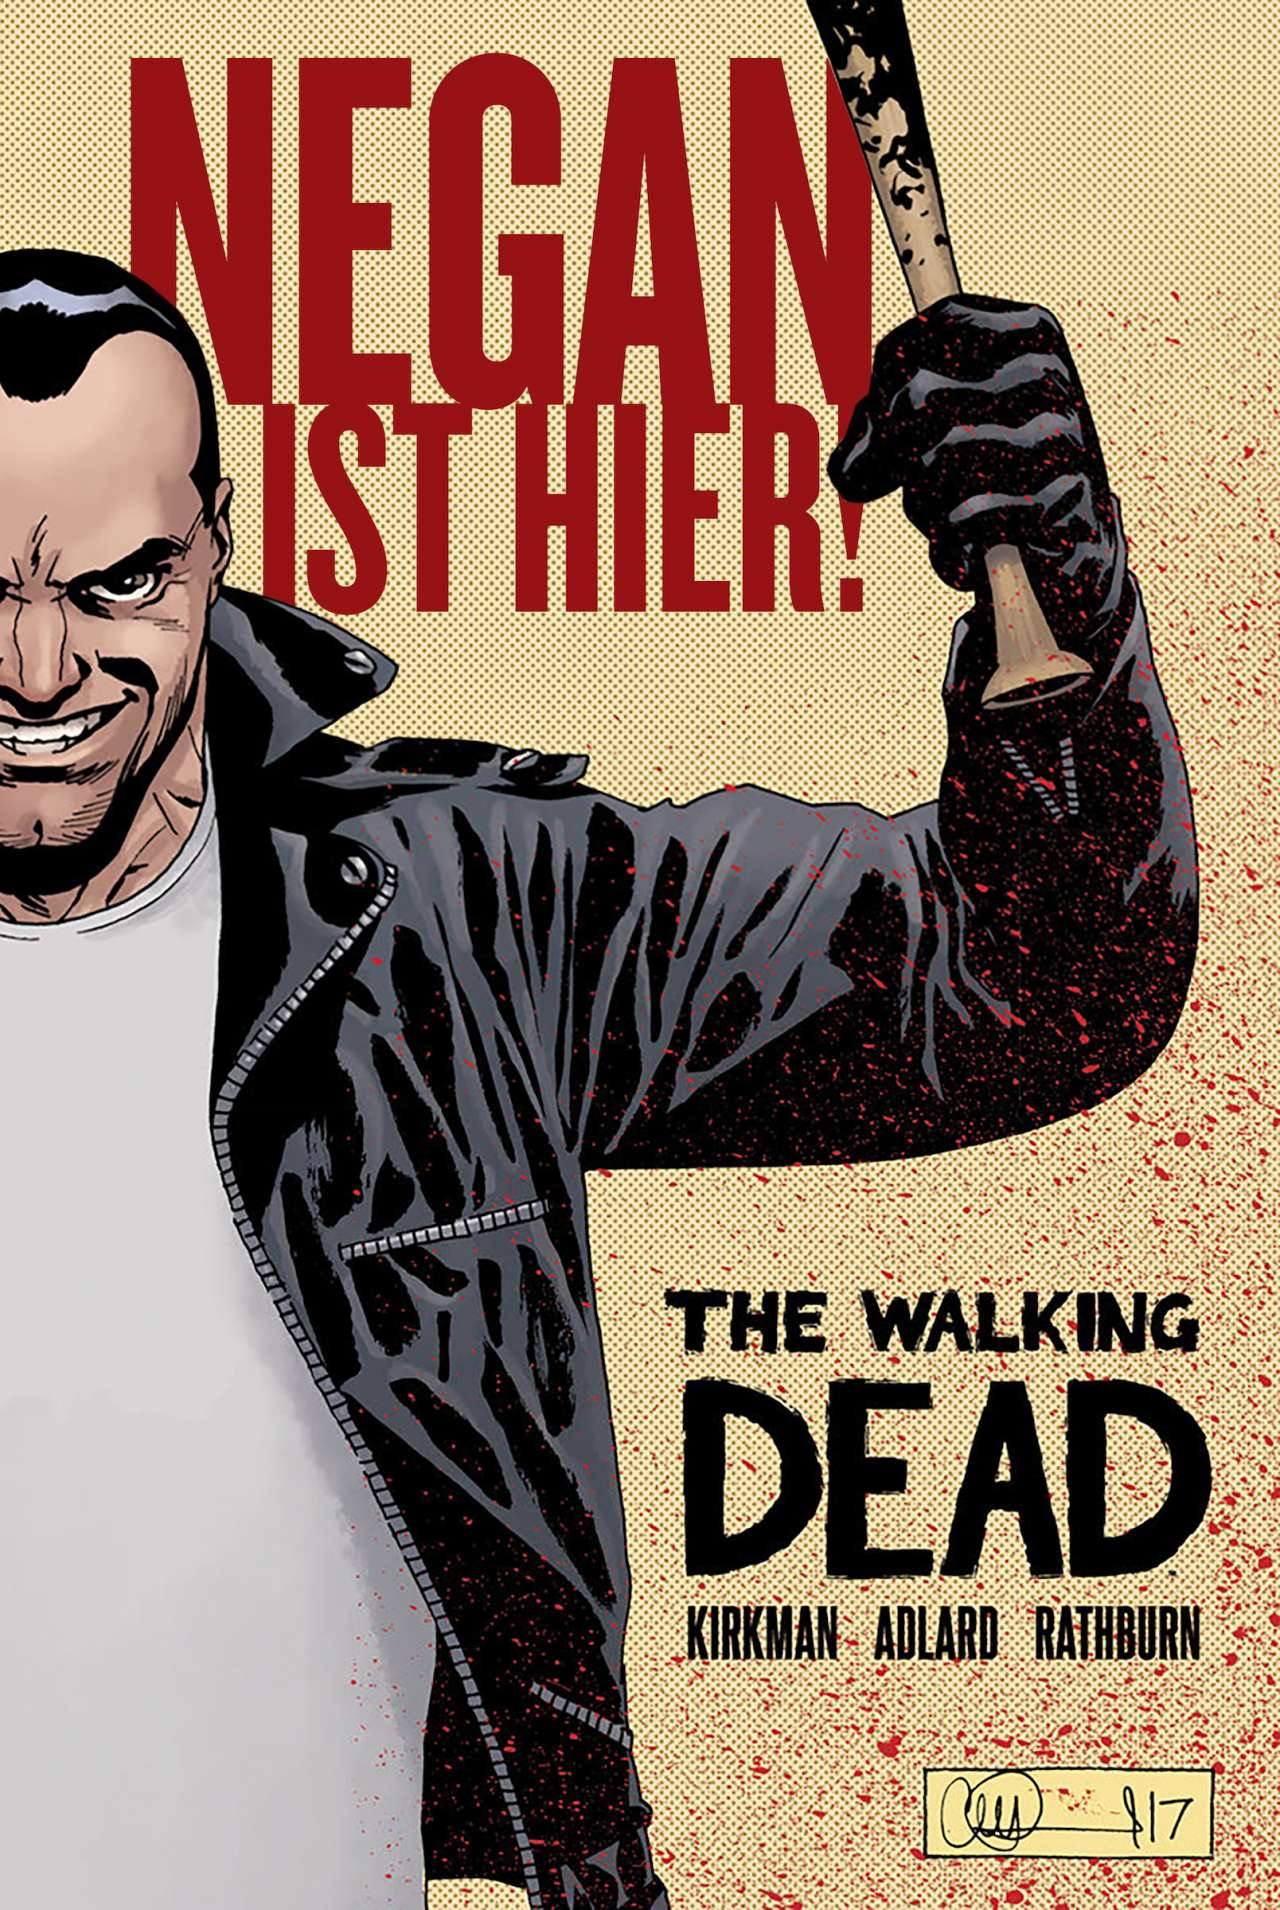 The Walking Dead - Negan ist hier!